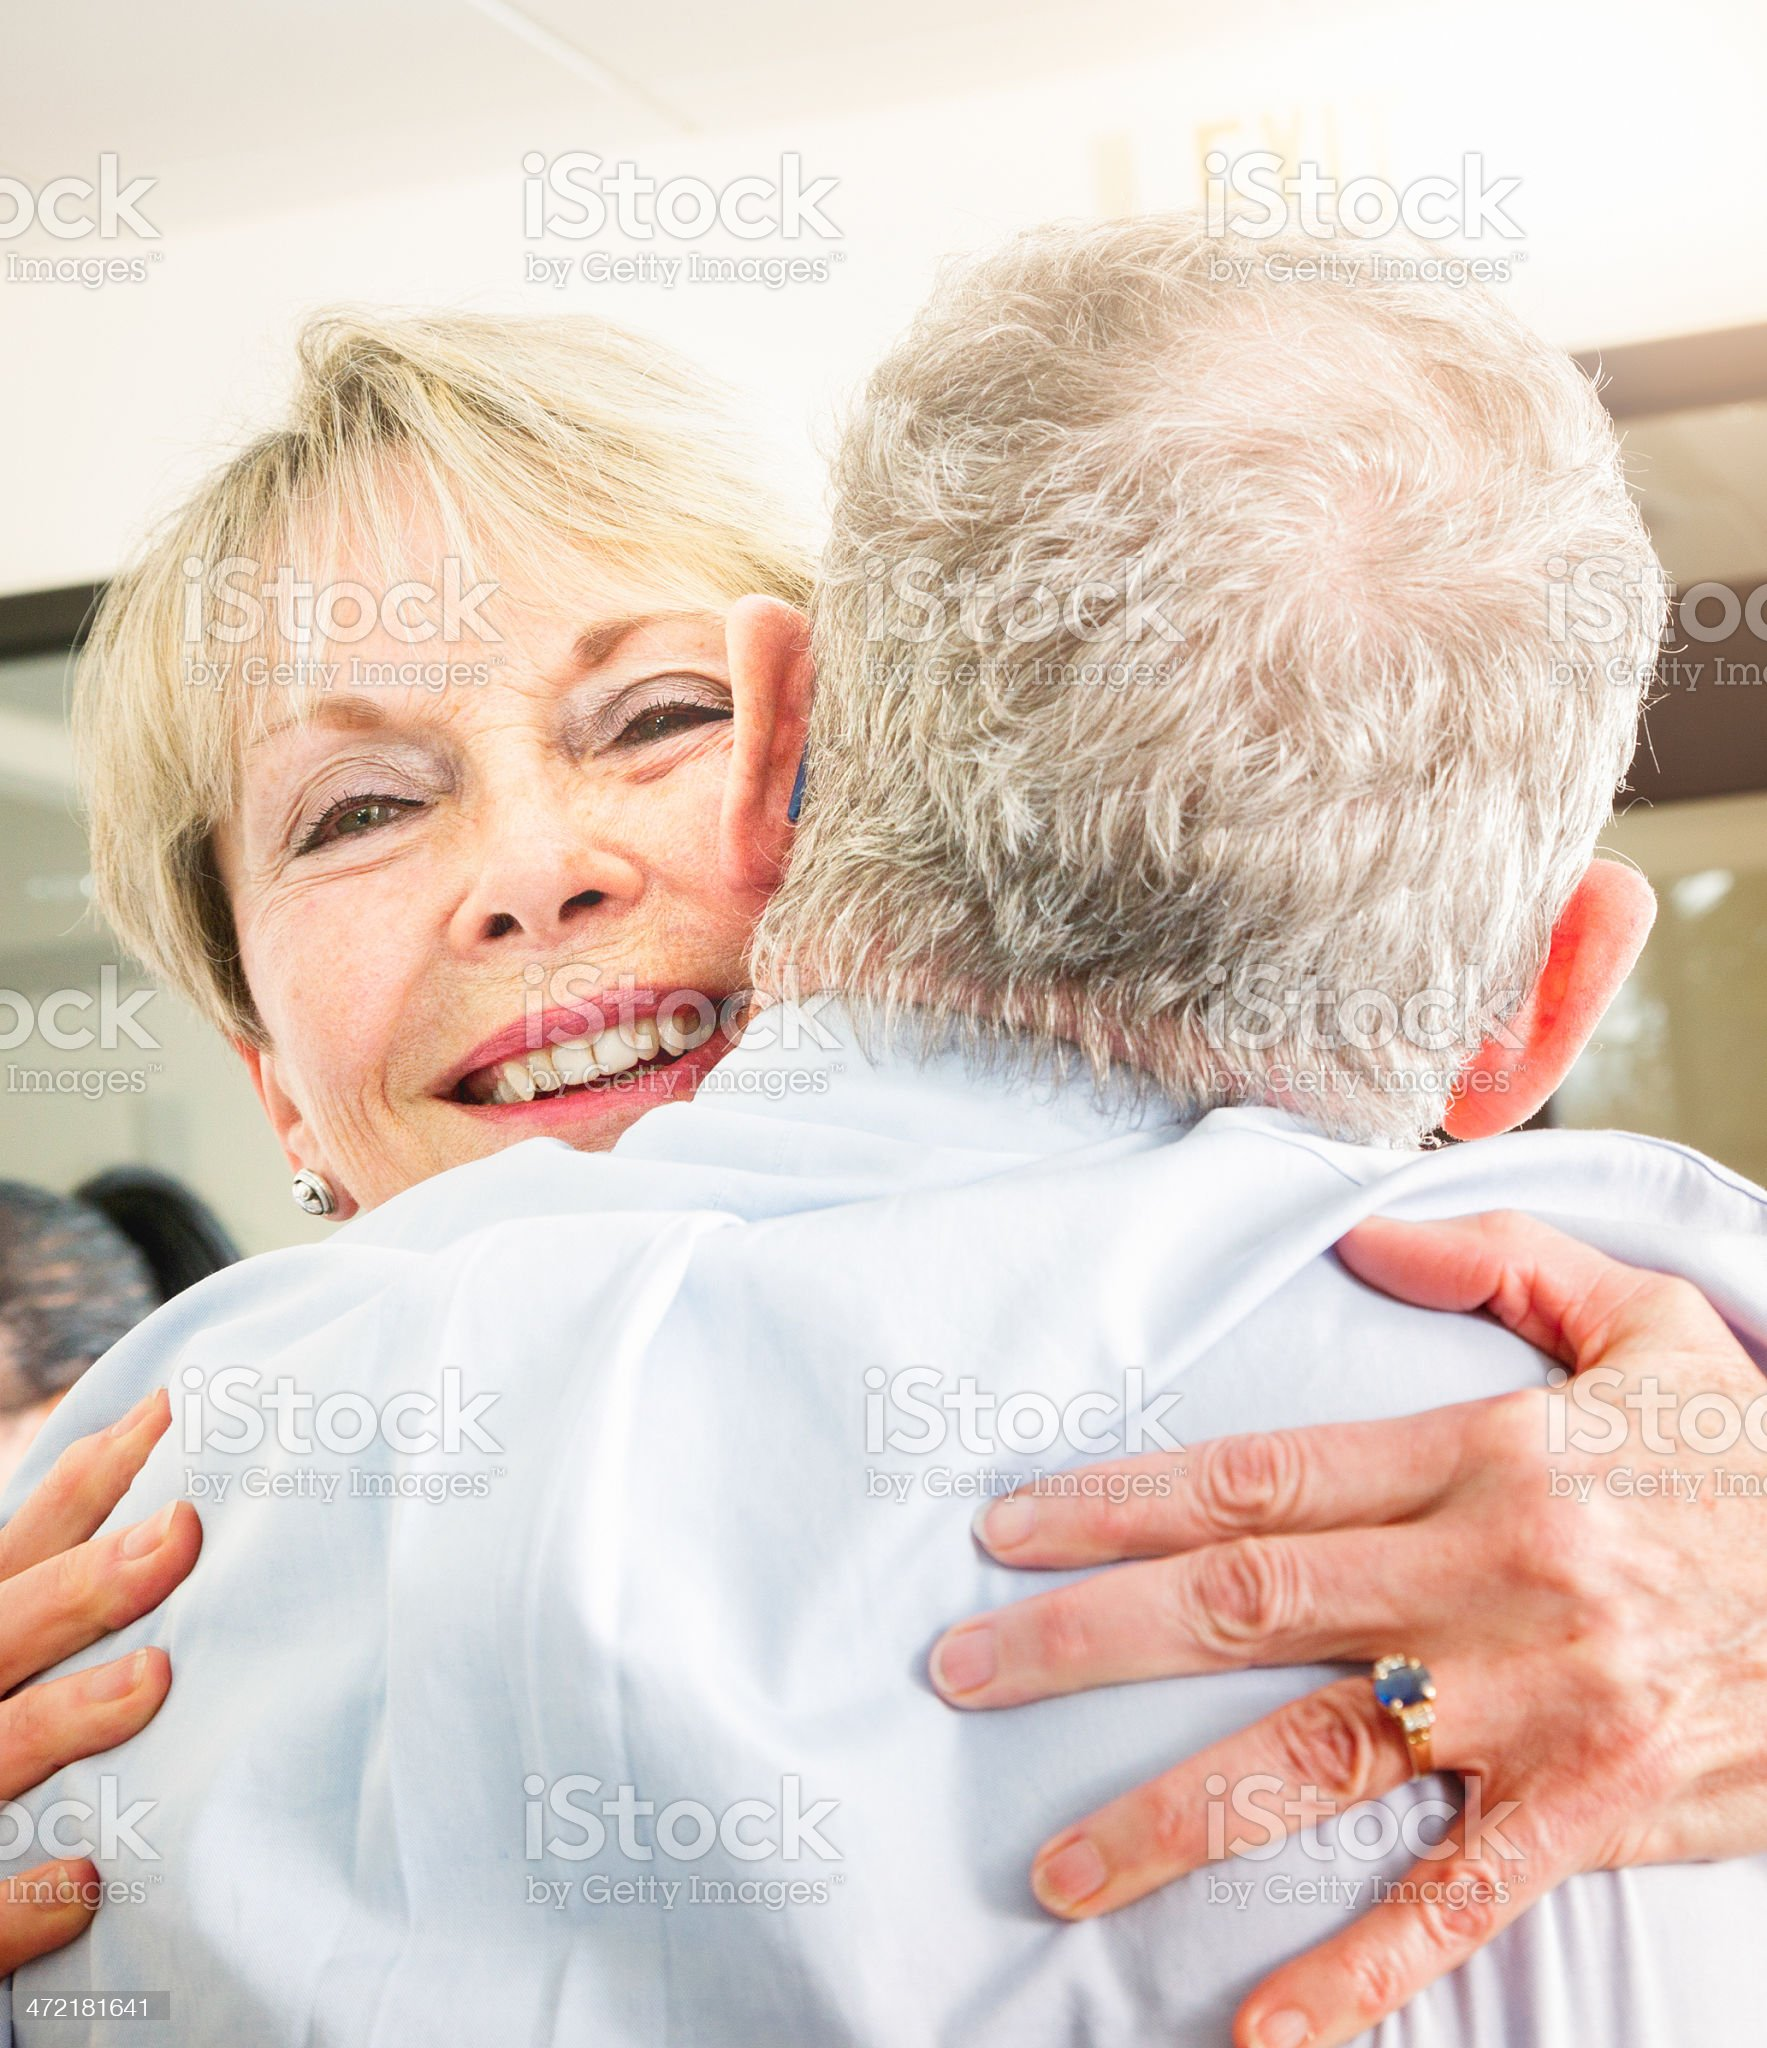 Senior woman smiling while hugging her older brother royalty-free stock photo